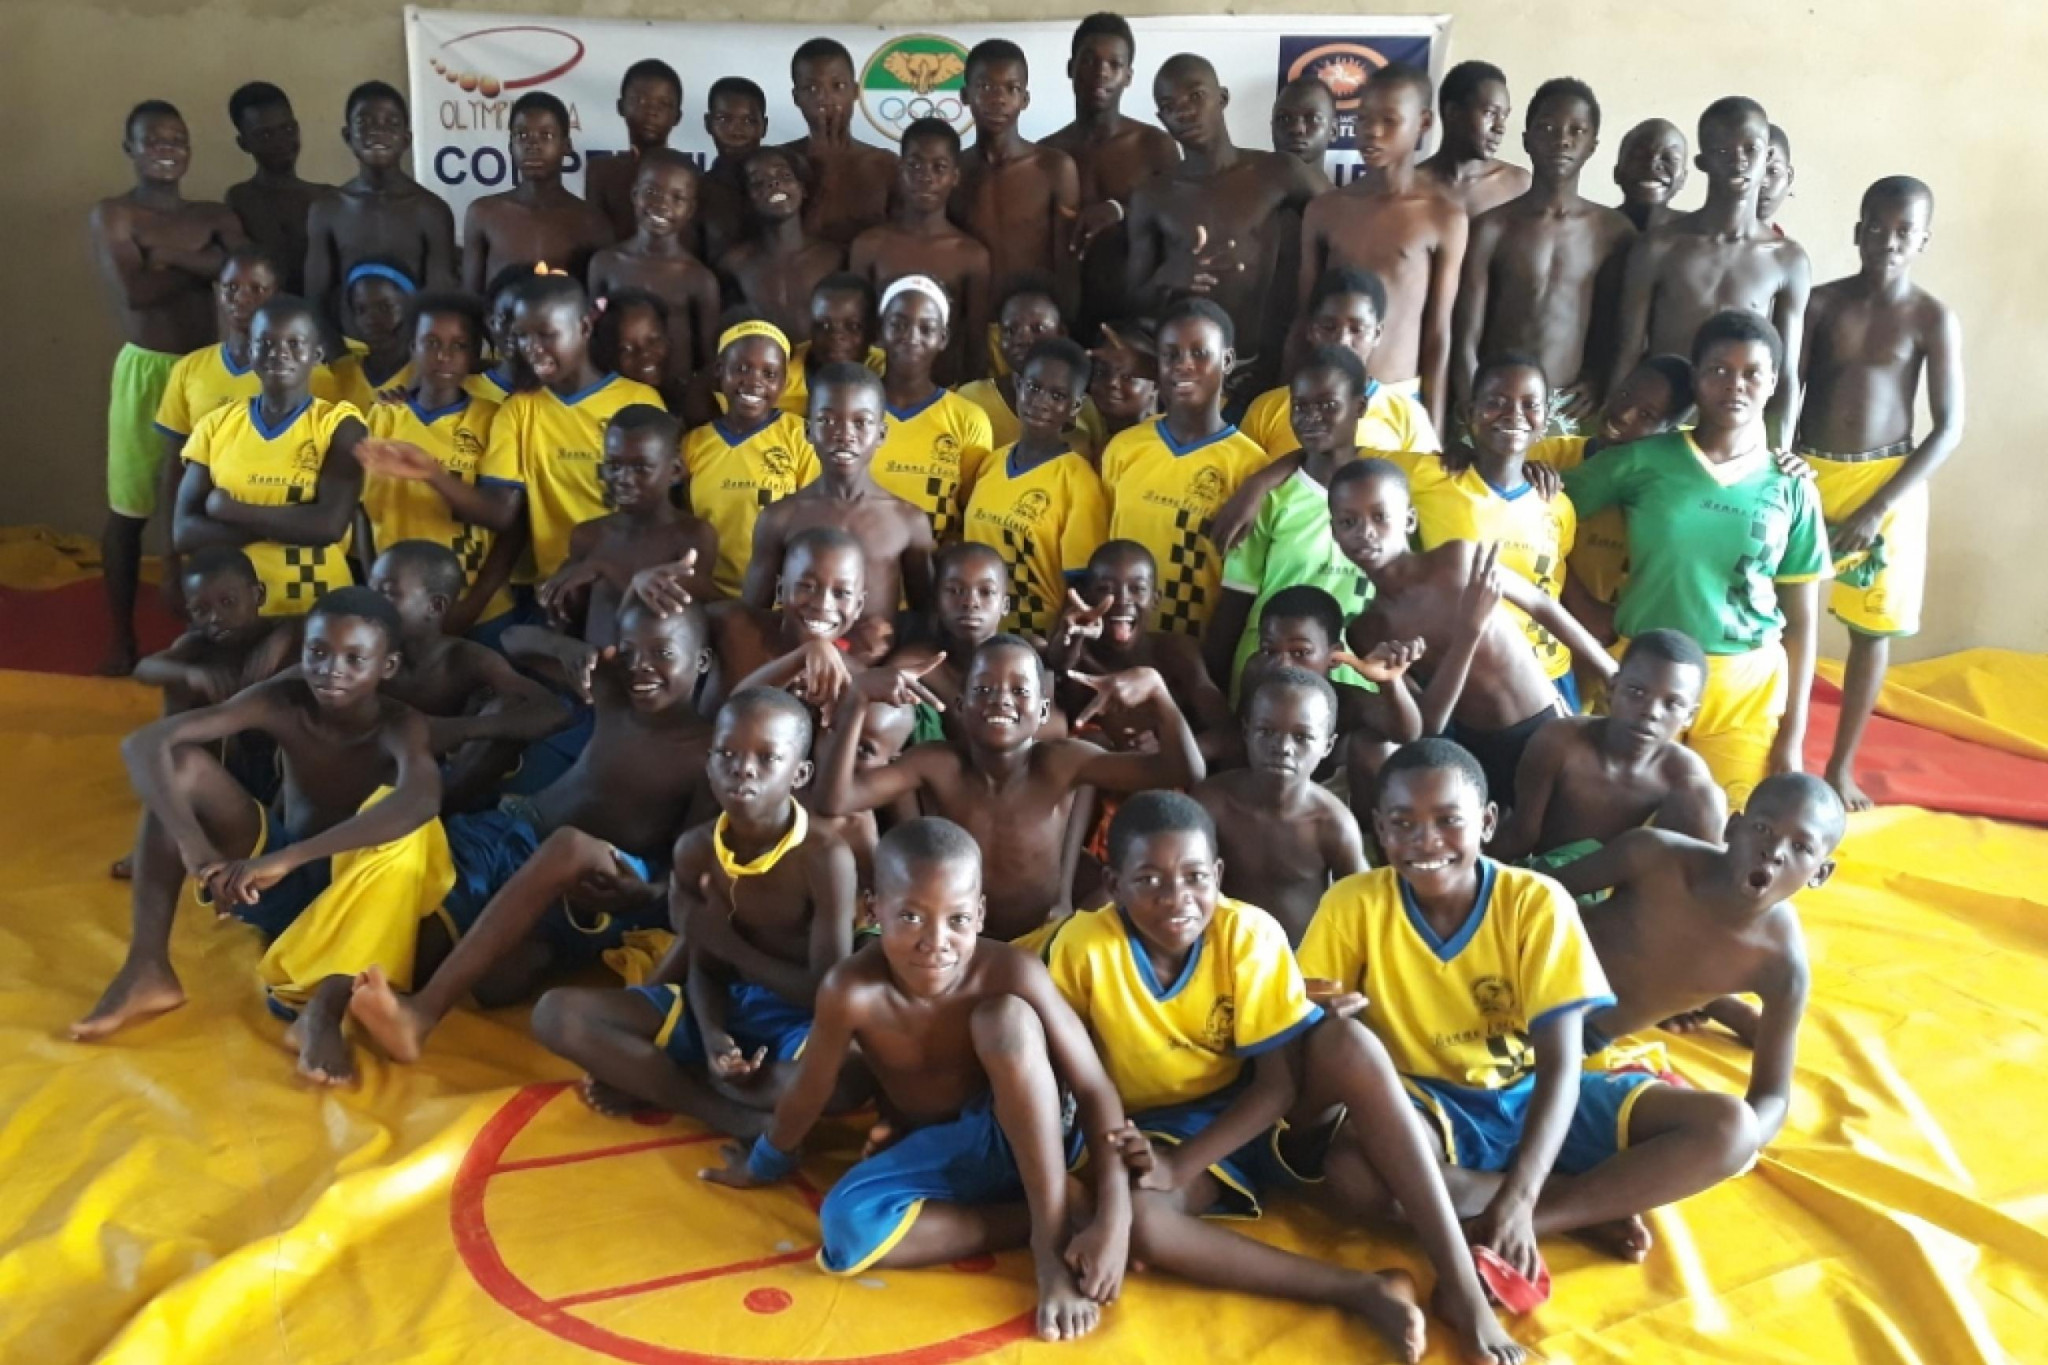 Major wrestling event held in Ivory Coast after partnership between UWW and OlympAfrica